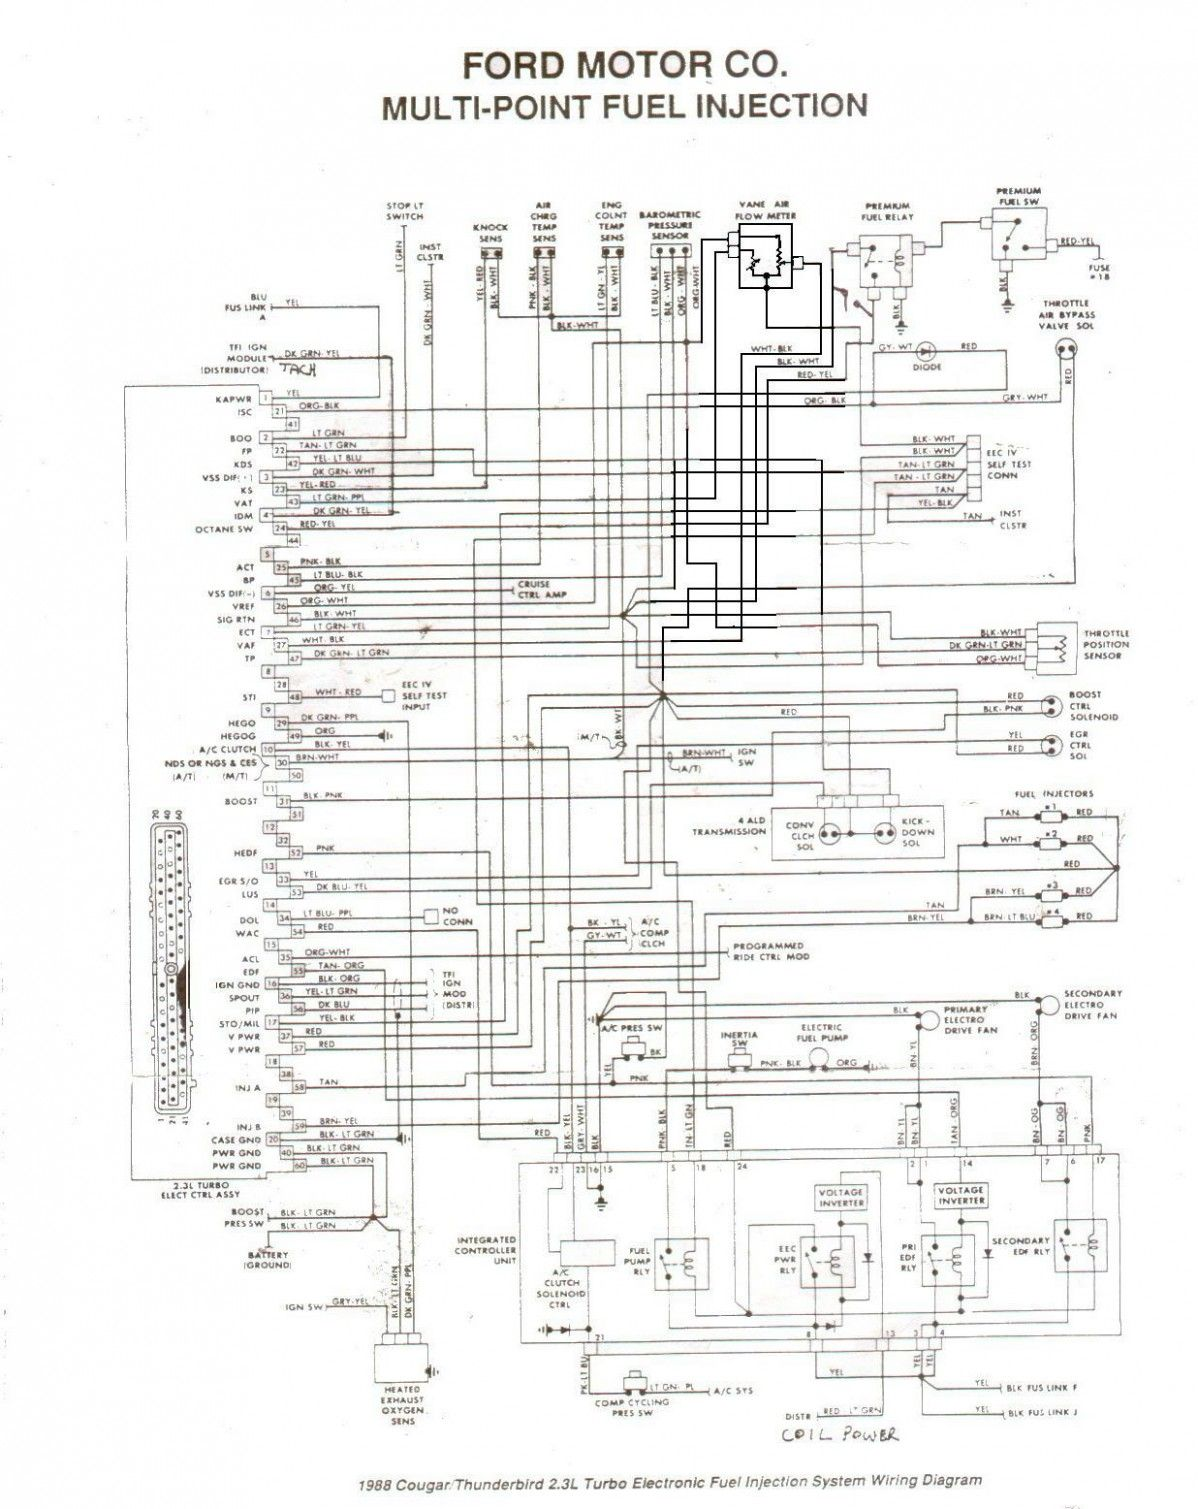 Engine Wiring Diagram For 4 Ford Ranger Raptor